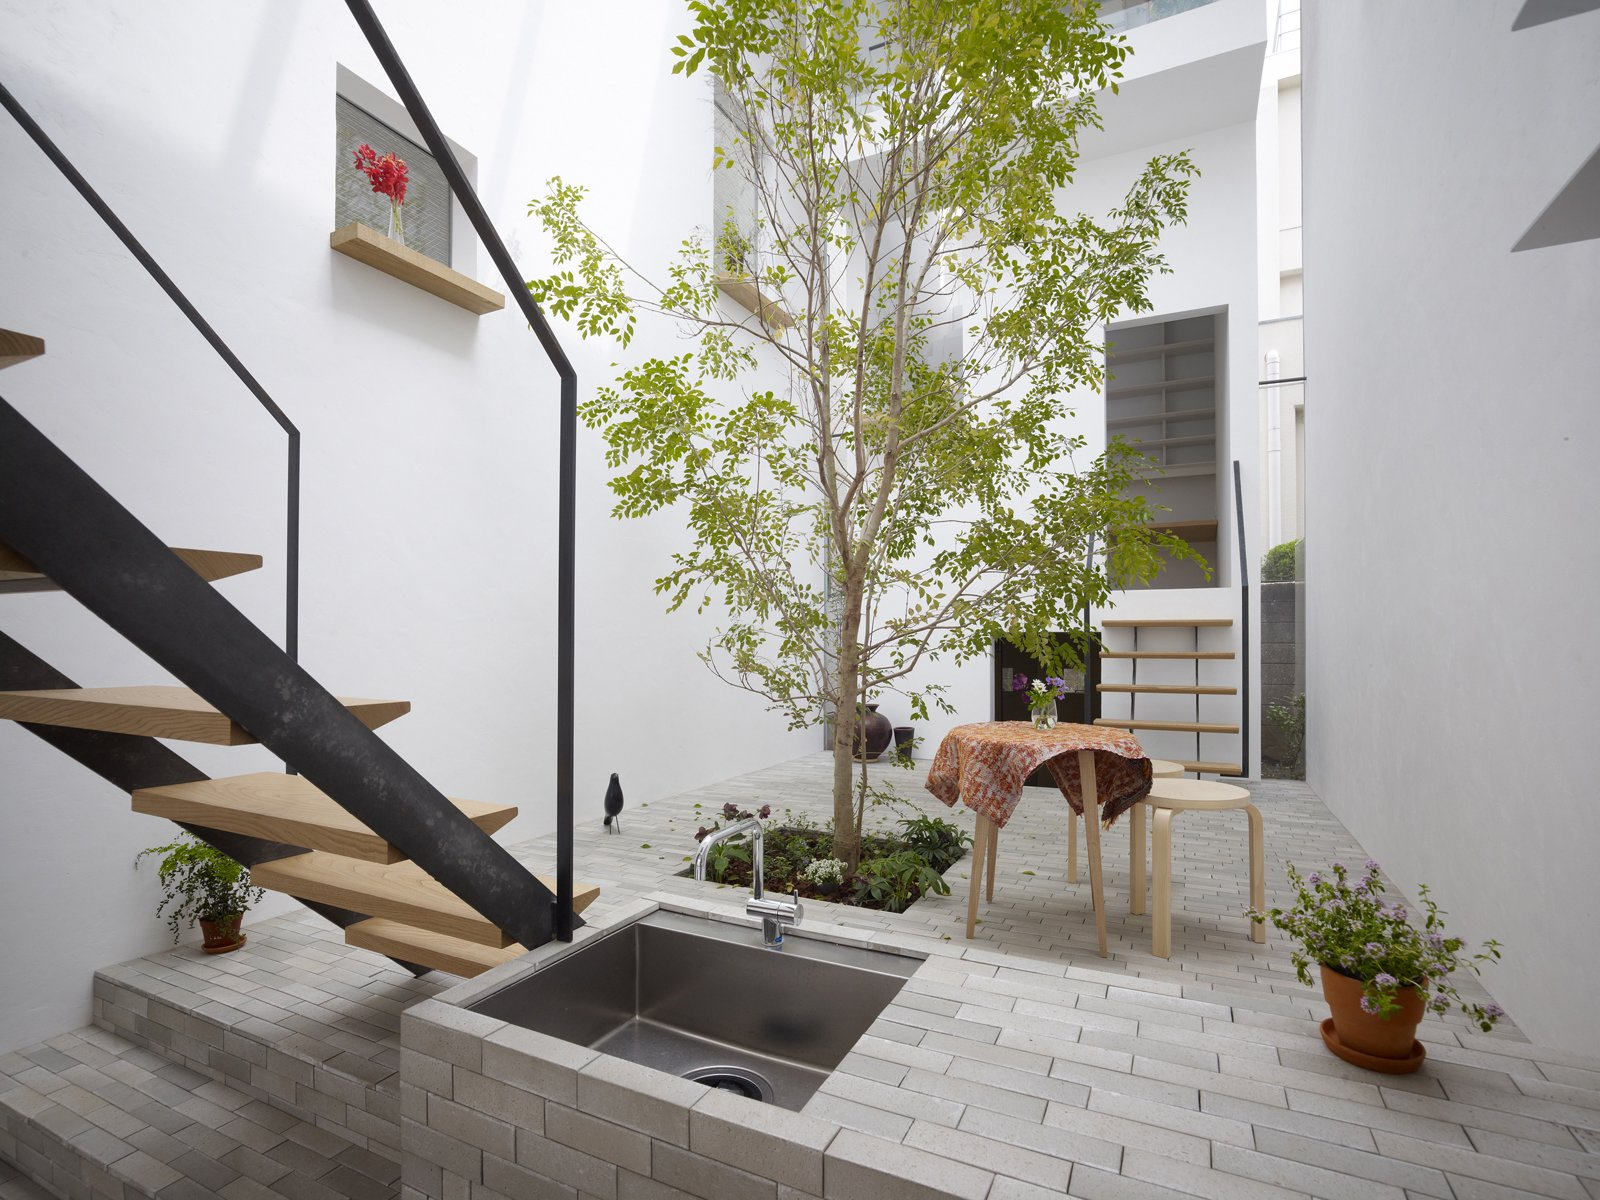 """We tried to achieve a space in which inside and outside co-exist together,"" architect Akira Mada says. ""As we walk around the house, at times we feel the space is totally outside while at other moments it is an interior. It's this co-existence that gives the residence its unique atmosphere.""  Ways to Incorporate Trees into Homes by Diana Budds from Great Indoors"